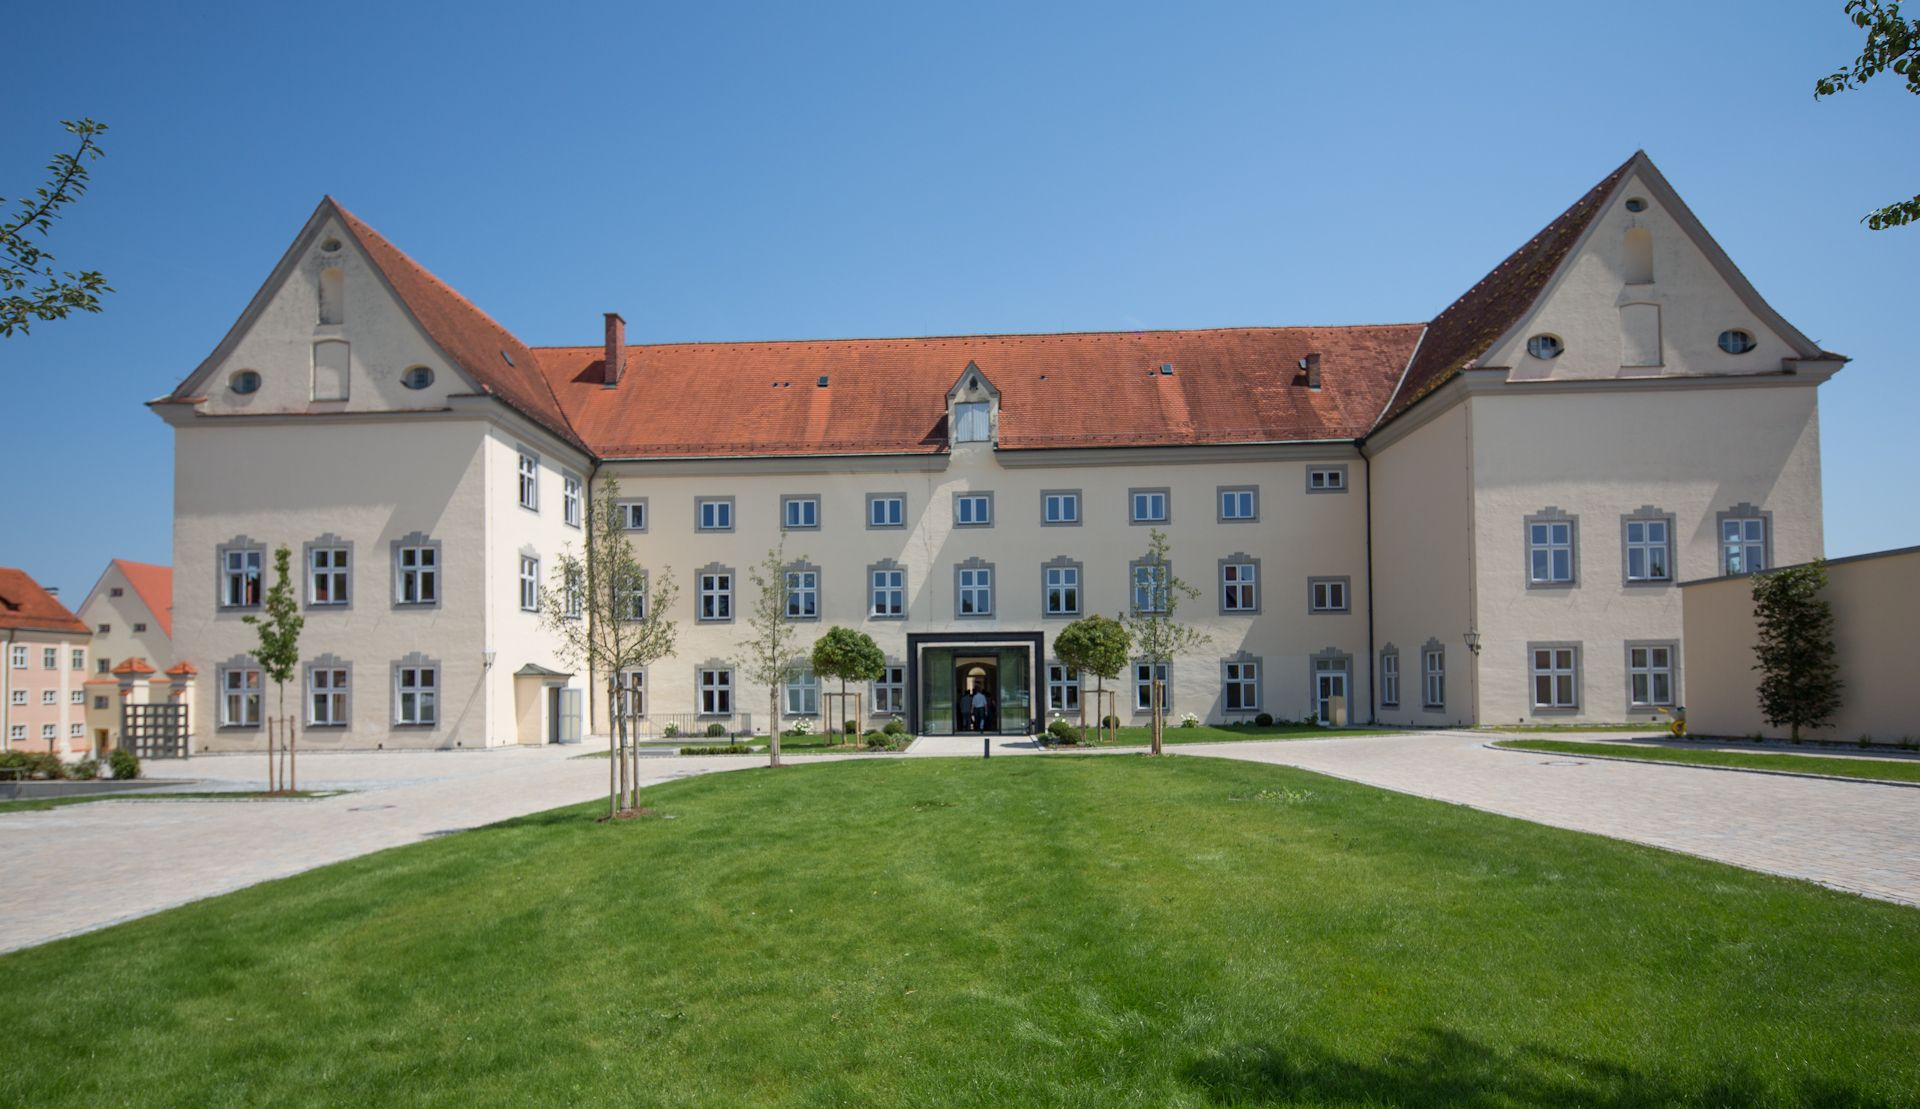 | Hotel Kloster Holzen GmbH  A beautiful hotel high on a hill in rural German farmland